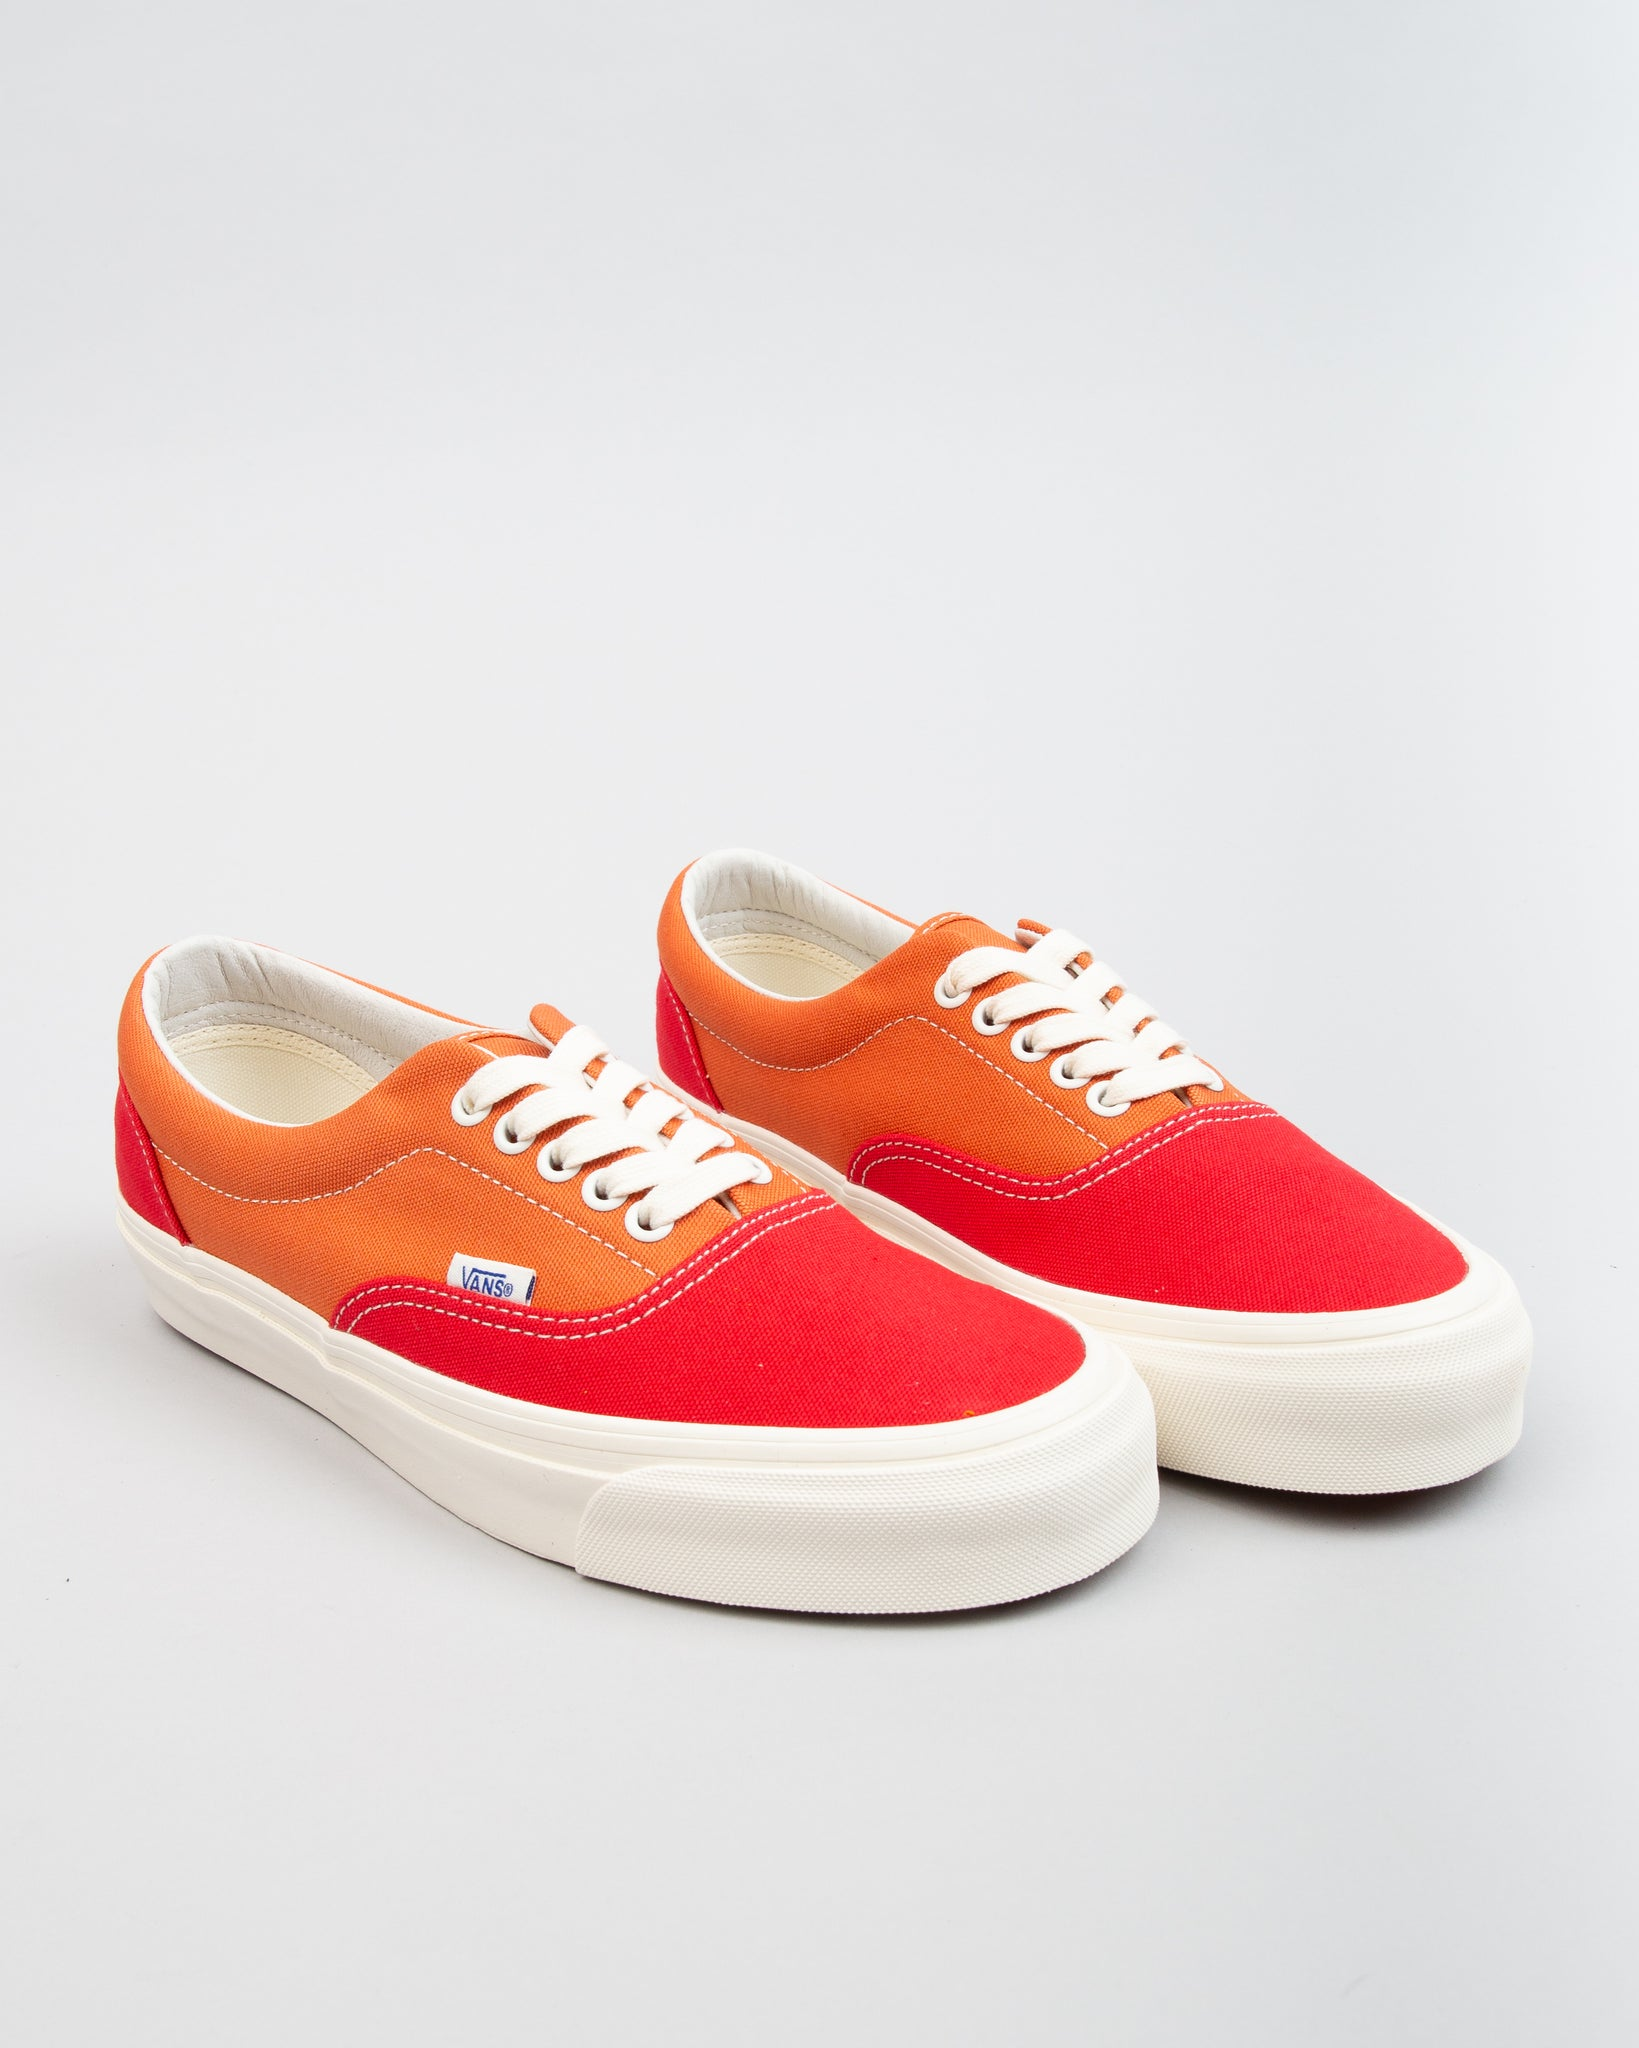 OG Era LX Racing Red/Apricot Orange